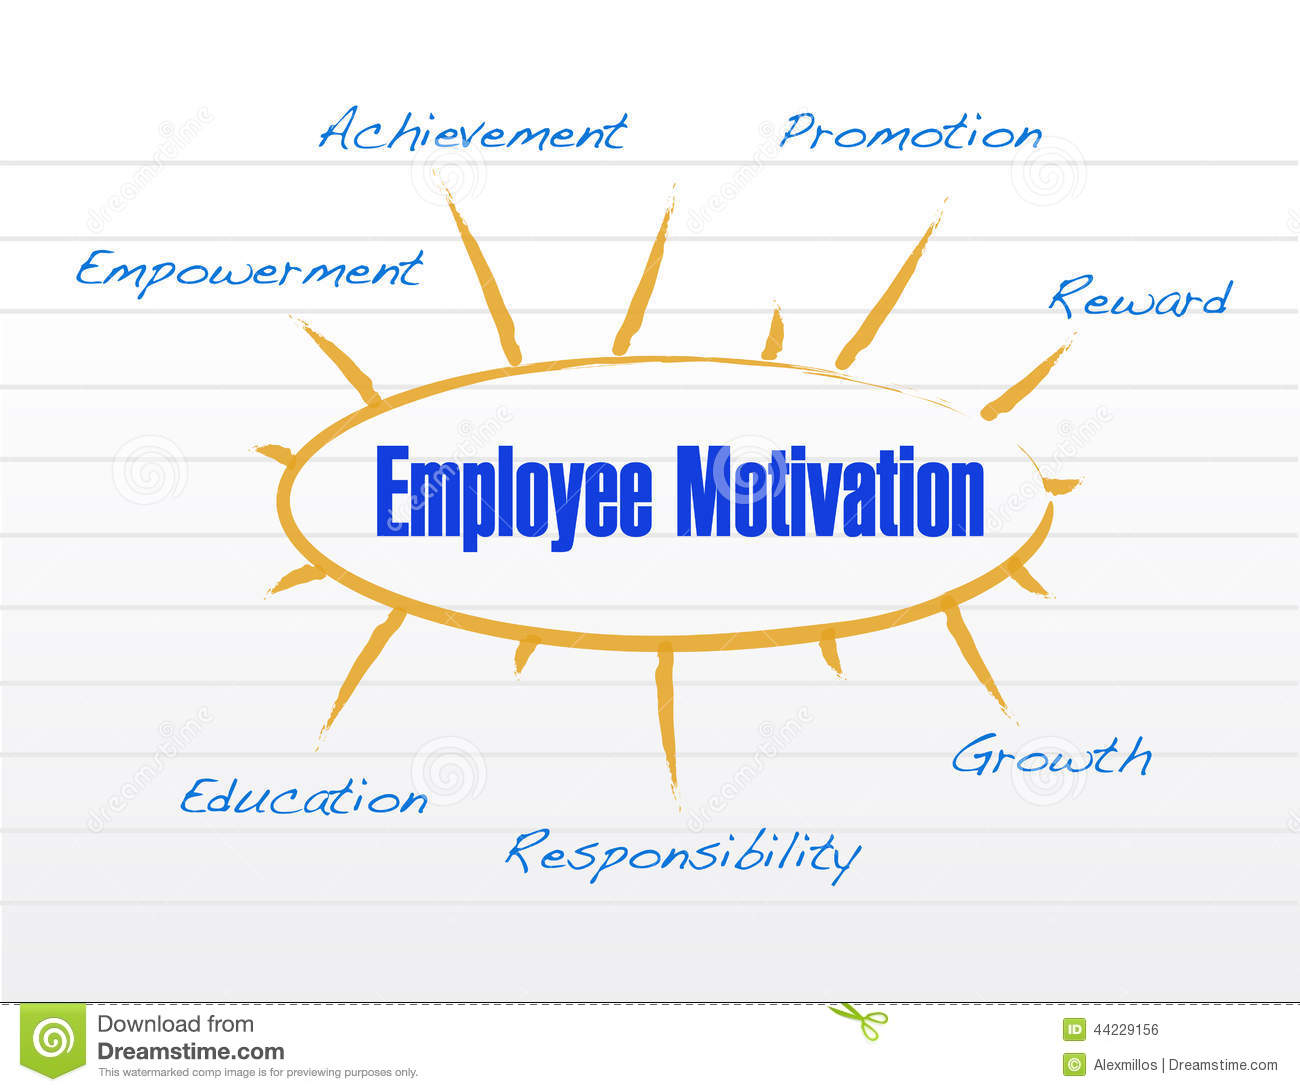 conceptual framework of leadership and employee motivation management essay Chapter 4: leadership-styles and employee motivation 17  main aspects that  make up the concept of leadership and then show how these  strategic  management as well as behavioural science will provide the main  nomothetic  and idiographic styles of leadership are derived from the framework of getzels  and guba.